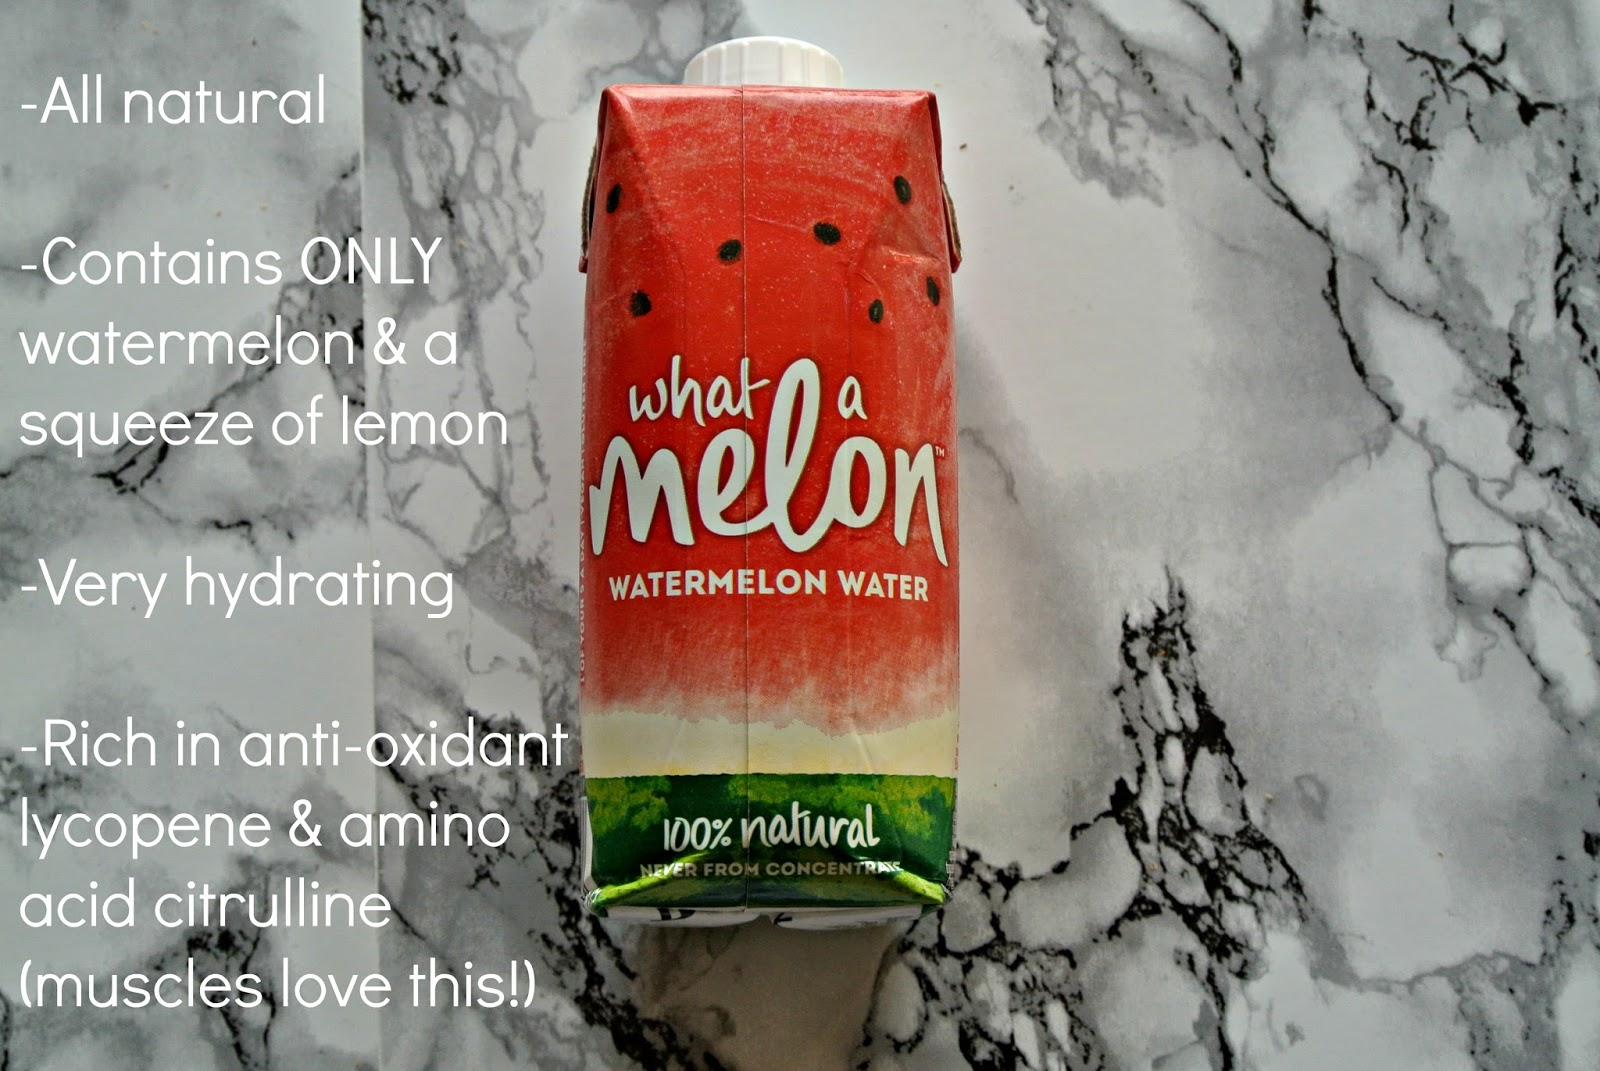 What A Melon Watermelon Water Drink Degustabox Image